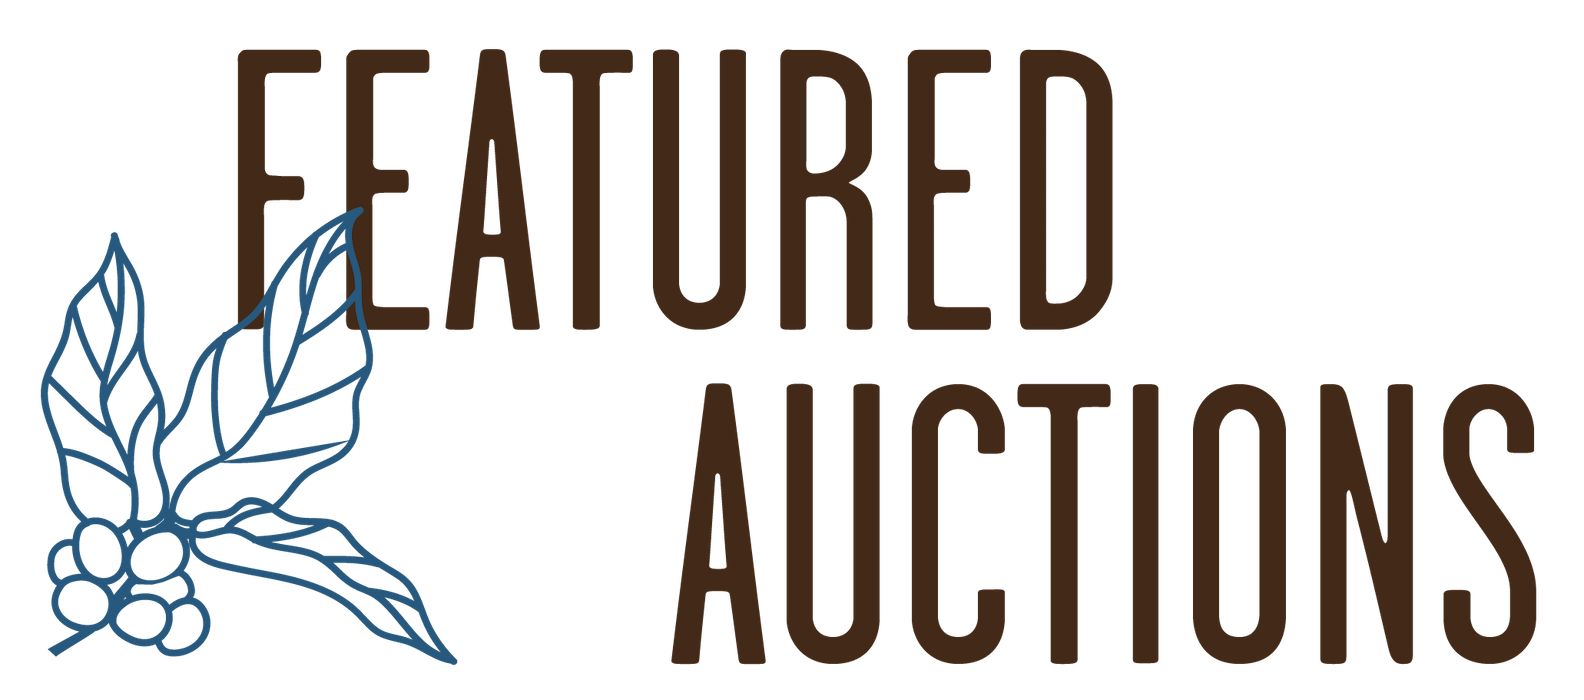 Featured Auctions